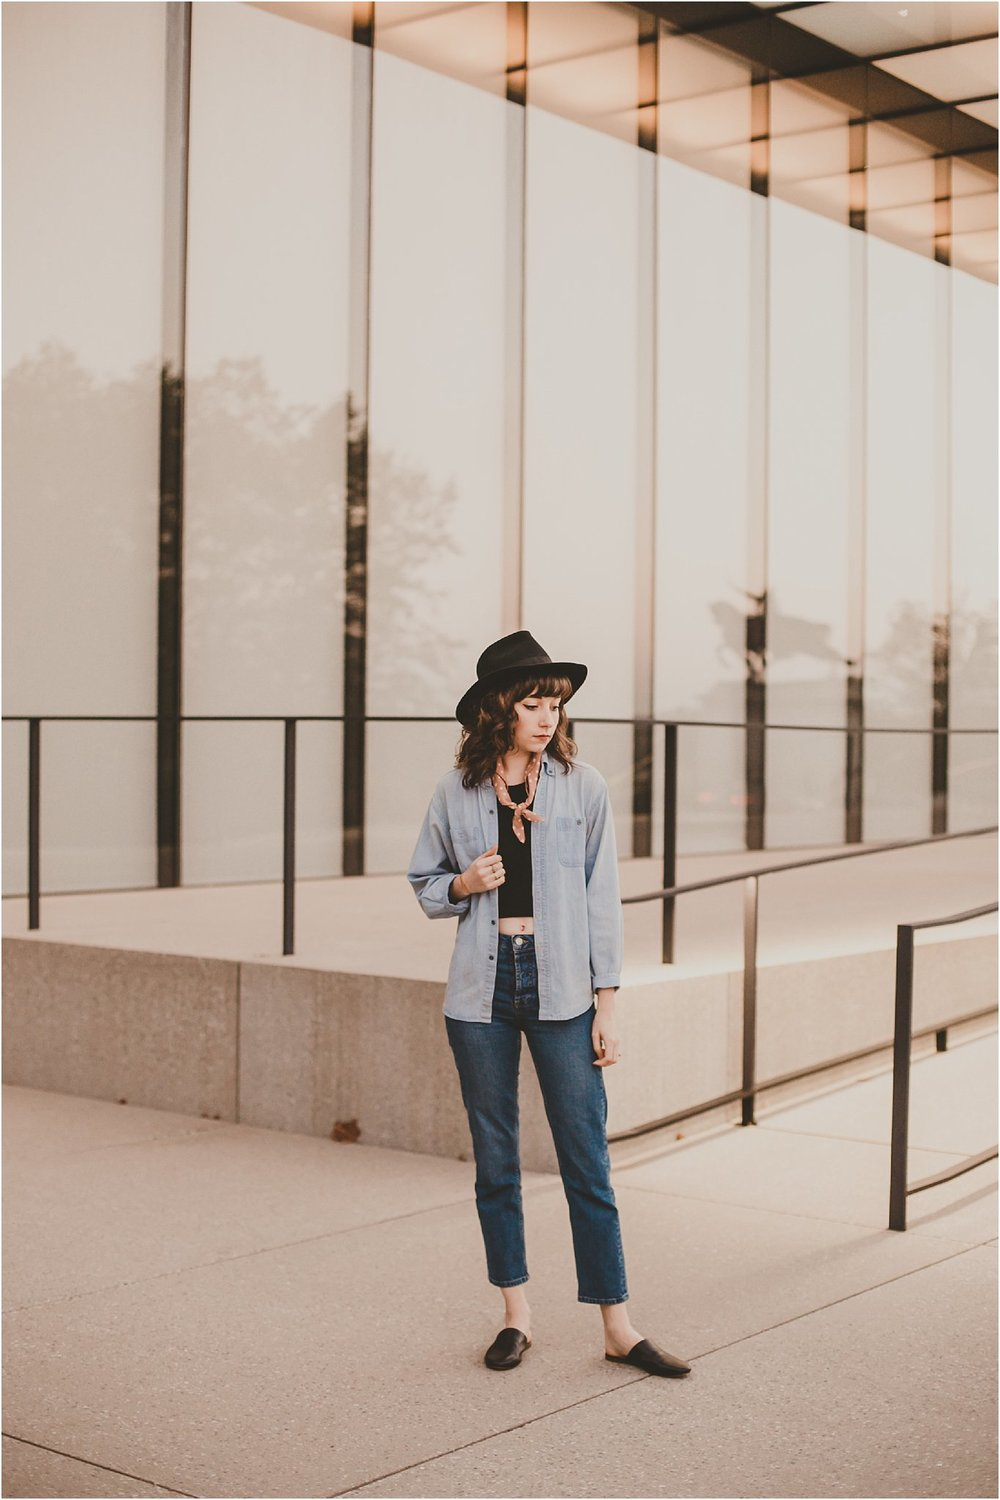 PattengalePhotography_WeekendWear_StLouis_Modern_Casual_Womenswear_Fall_Style_Hipster_Fashion_ArtHill_ForestPark_SaintLouis_Photographer_Boho__0001.jpg